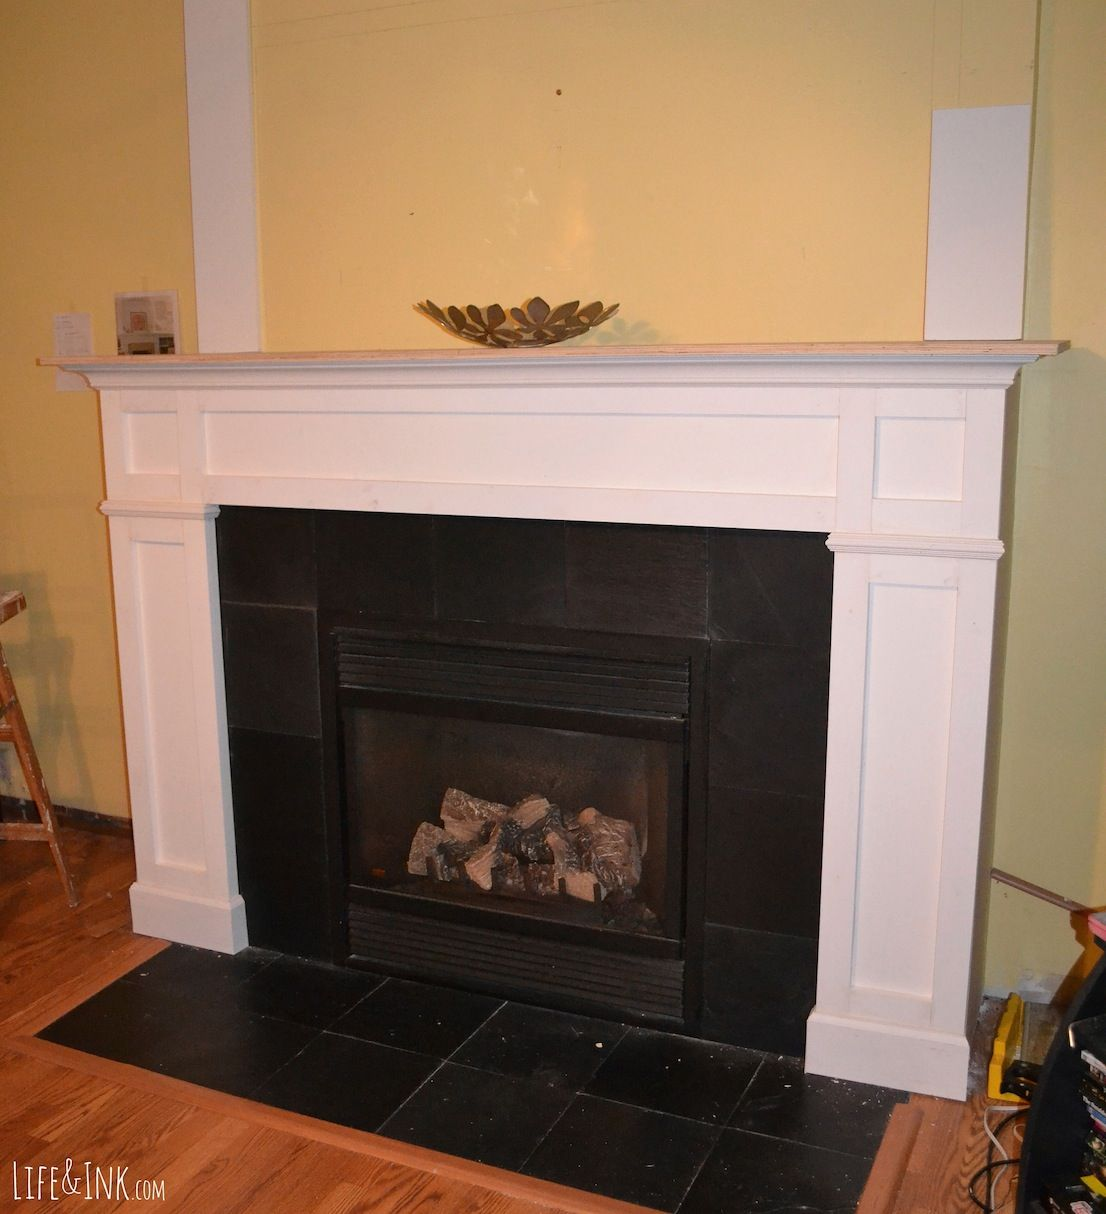 SHAKER STYLE FIREPLACE - Google Search | fireplace | Pinterest ...